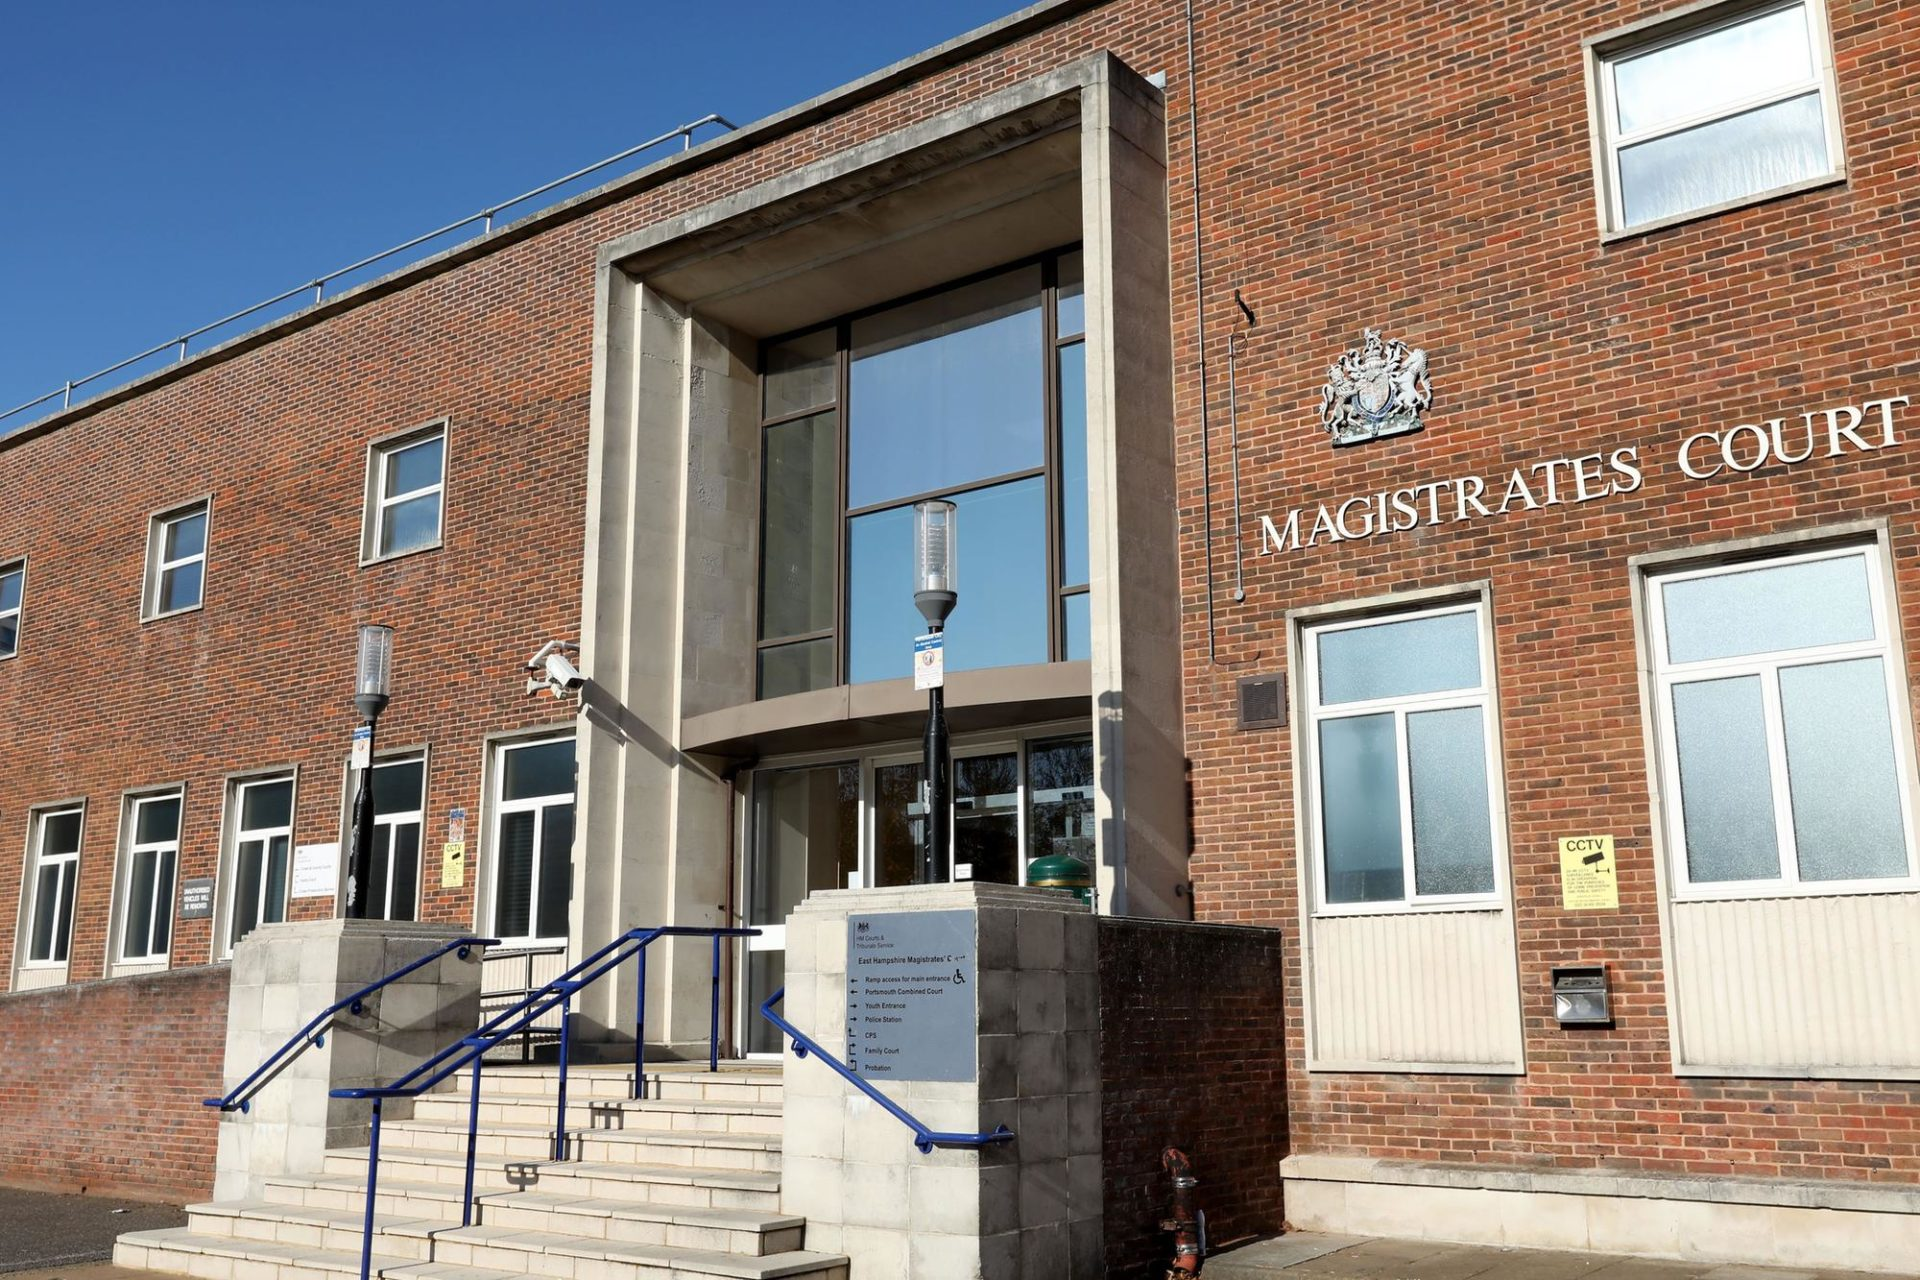 Portsmouth Magistrates